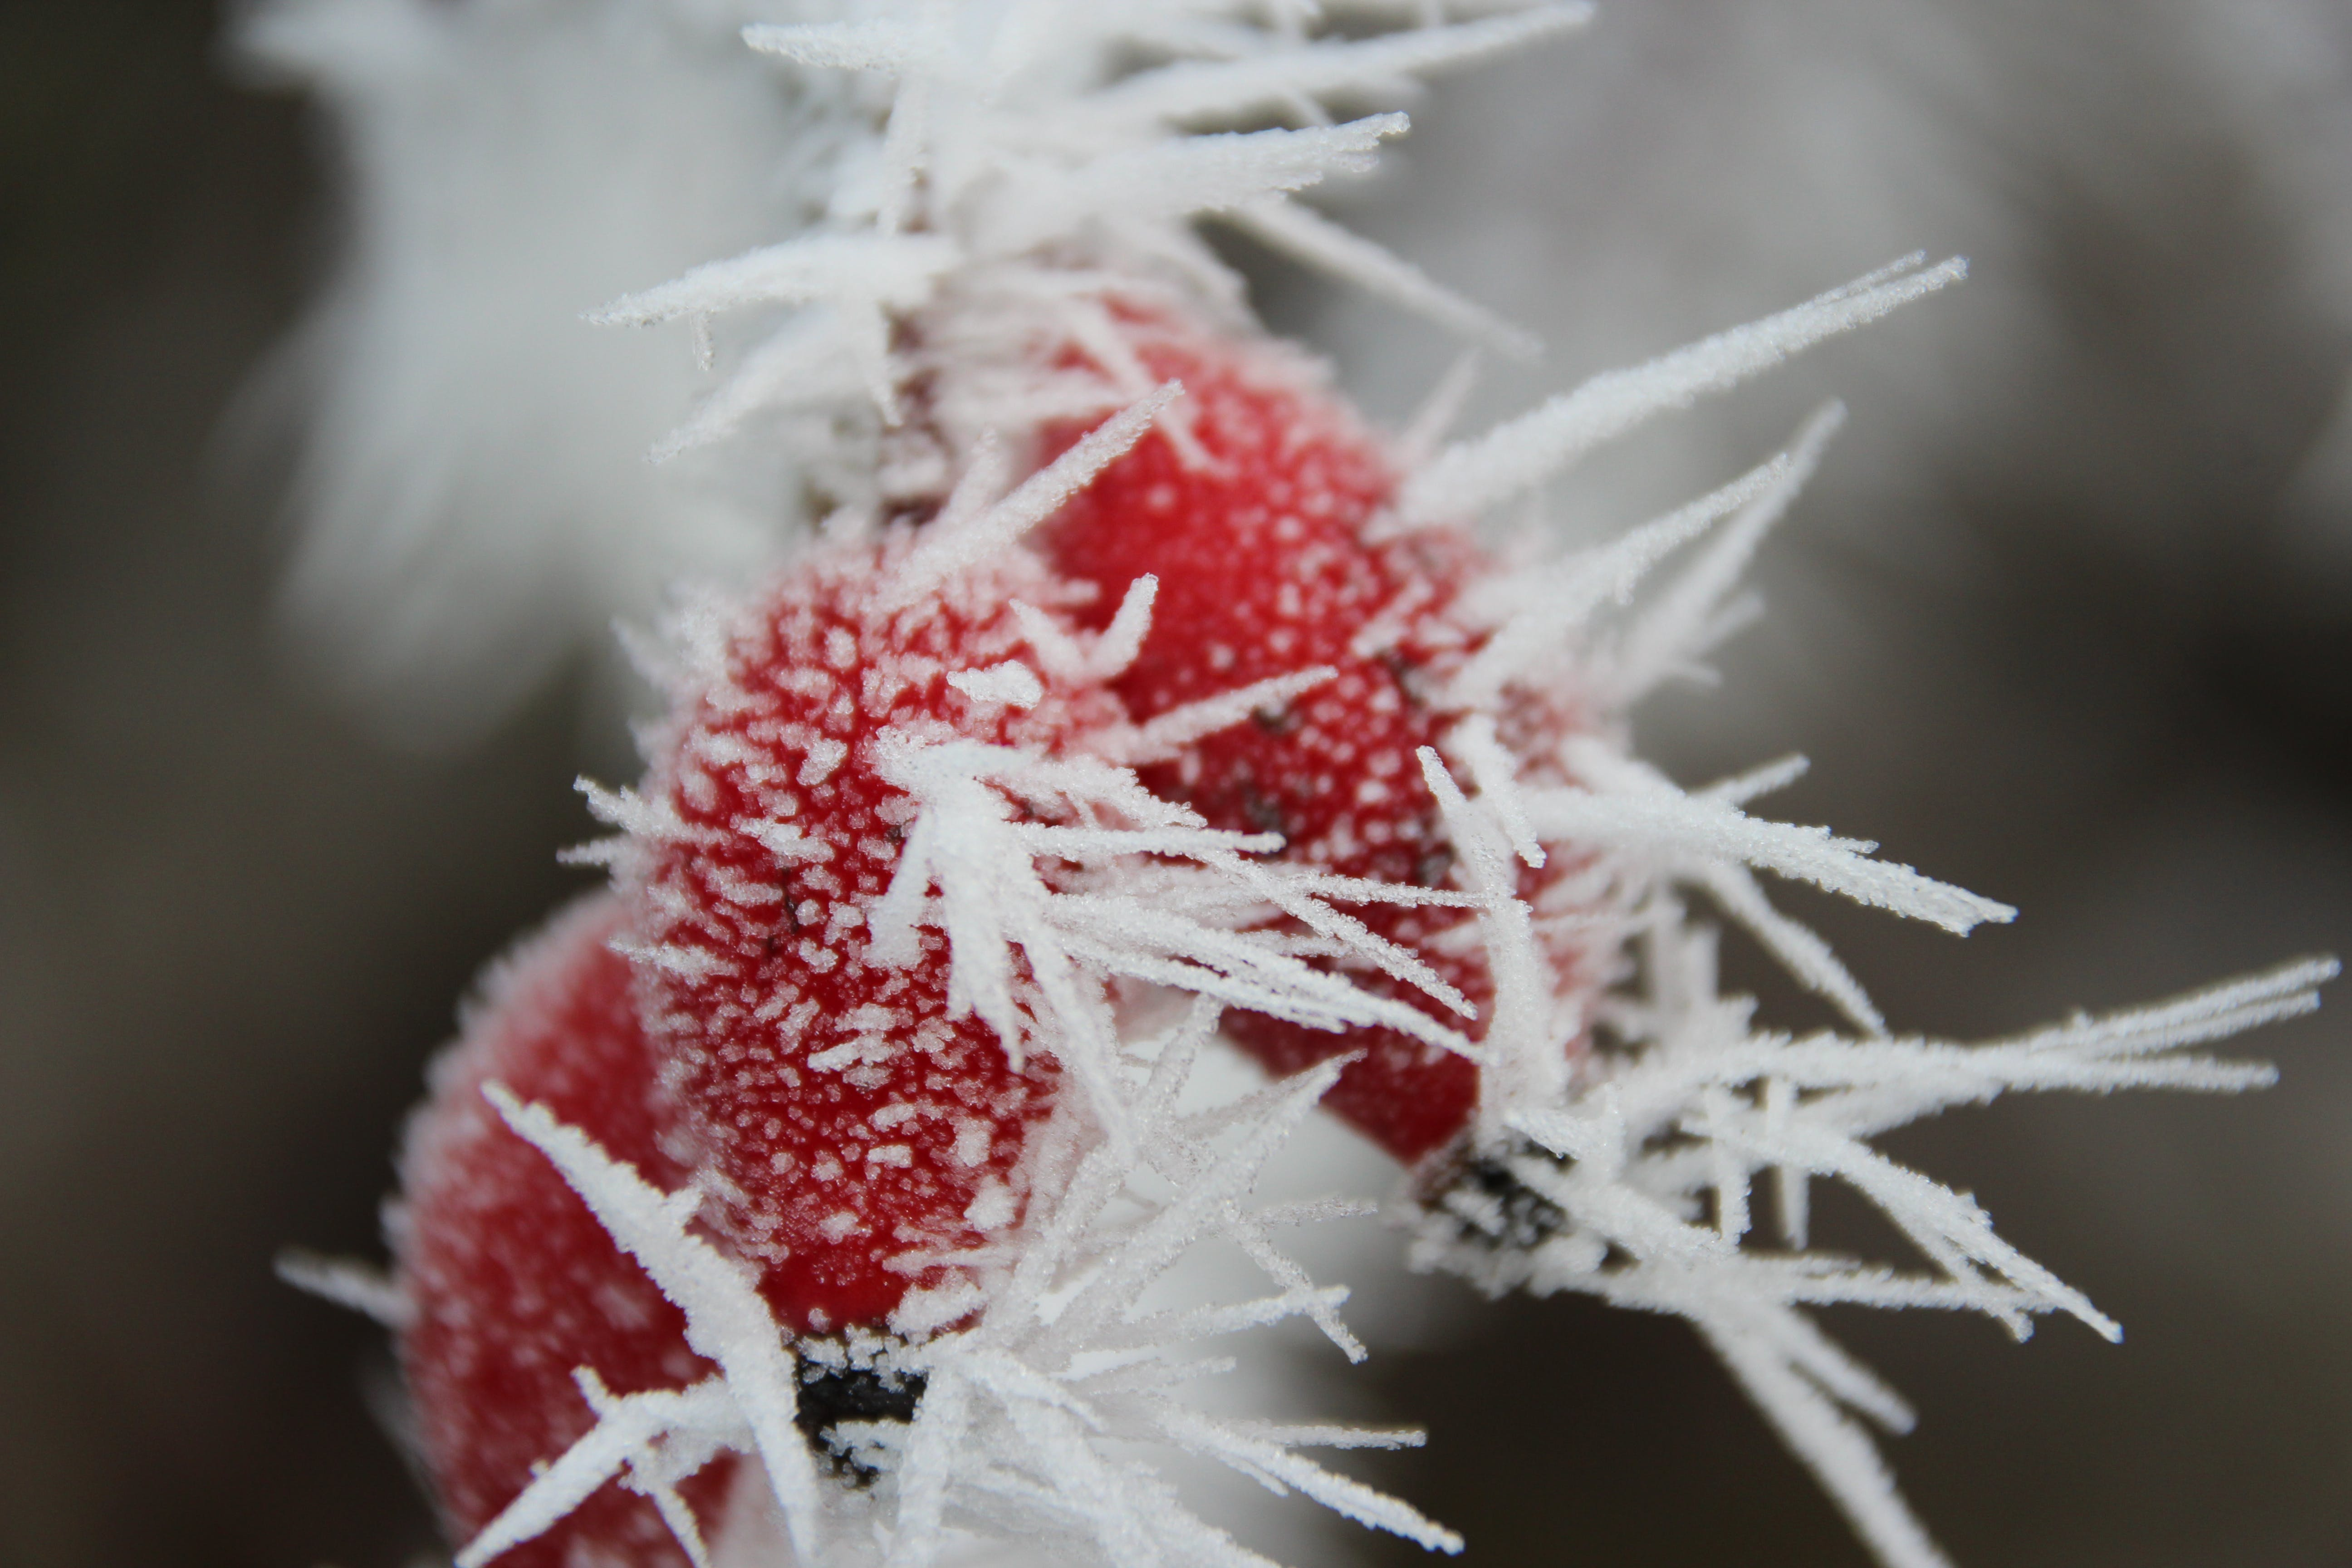 Frost Forming on Red Plant